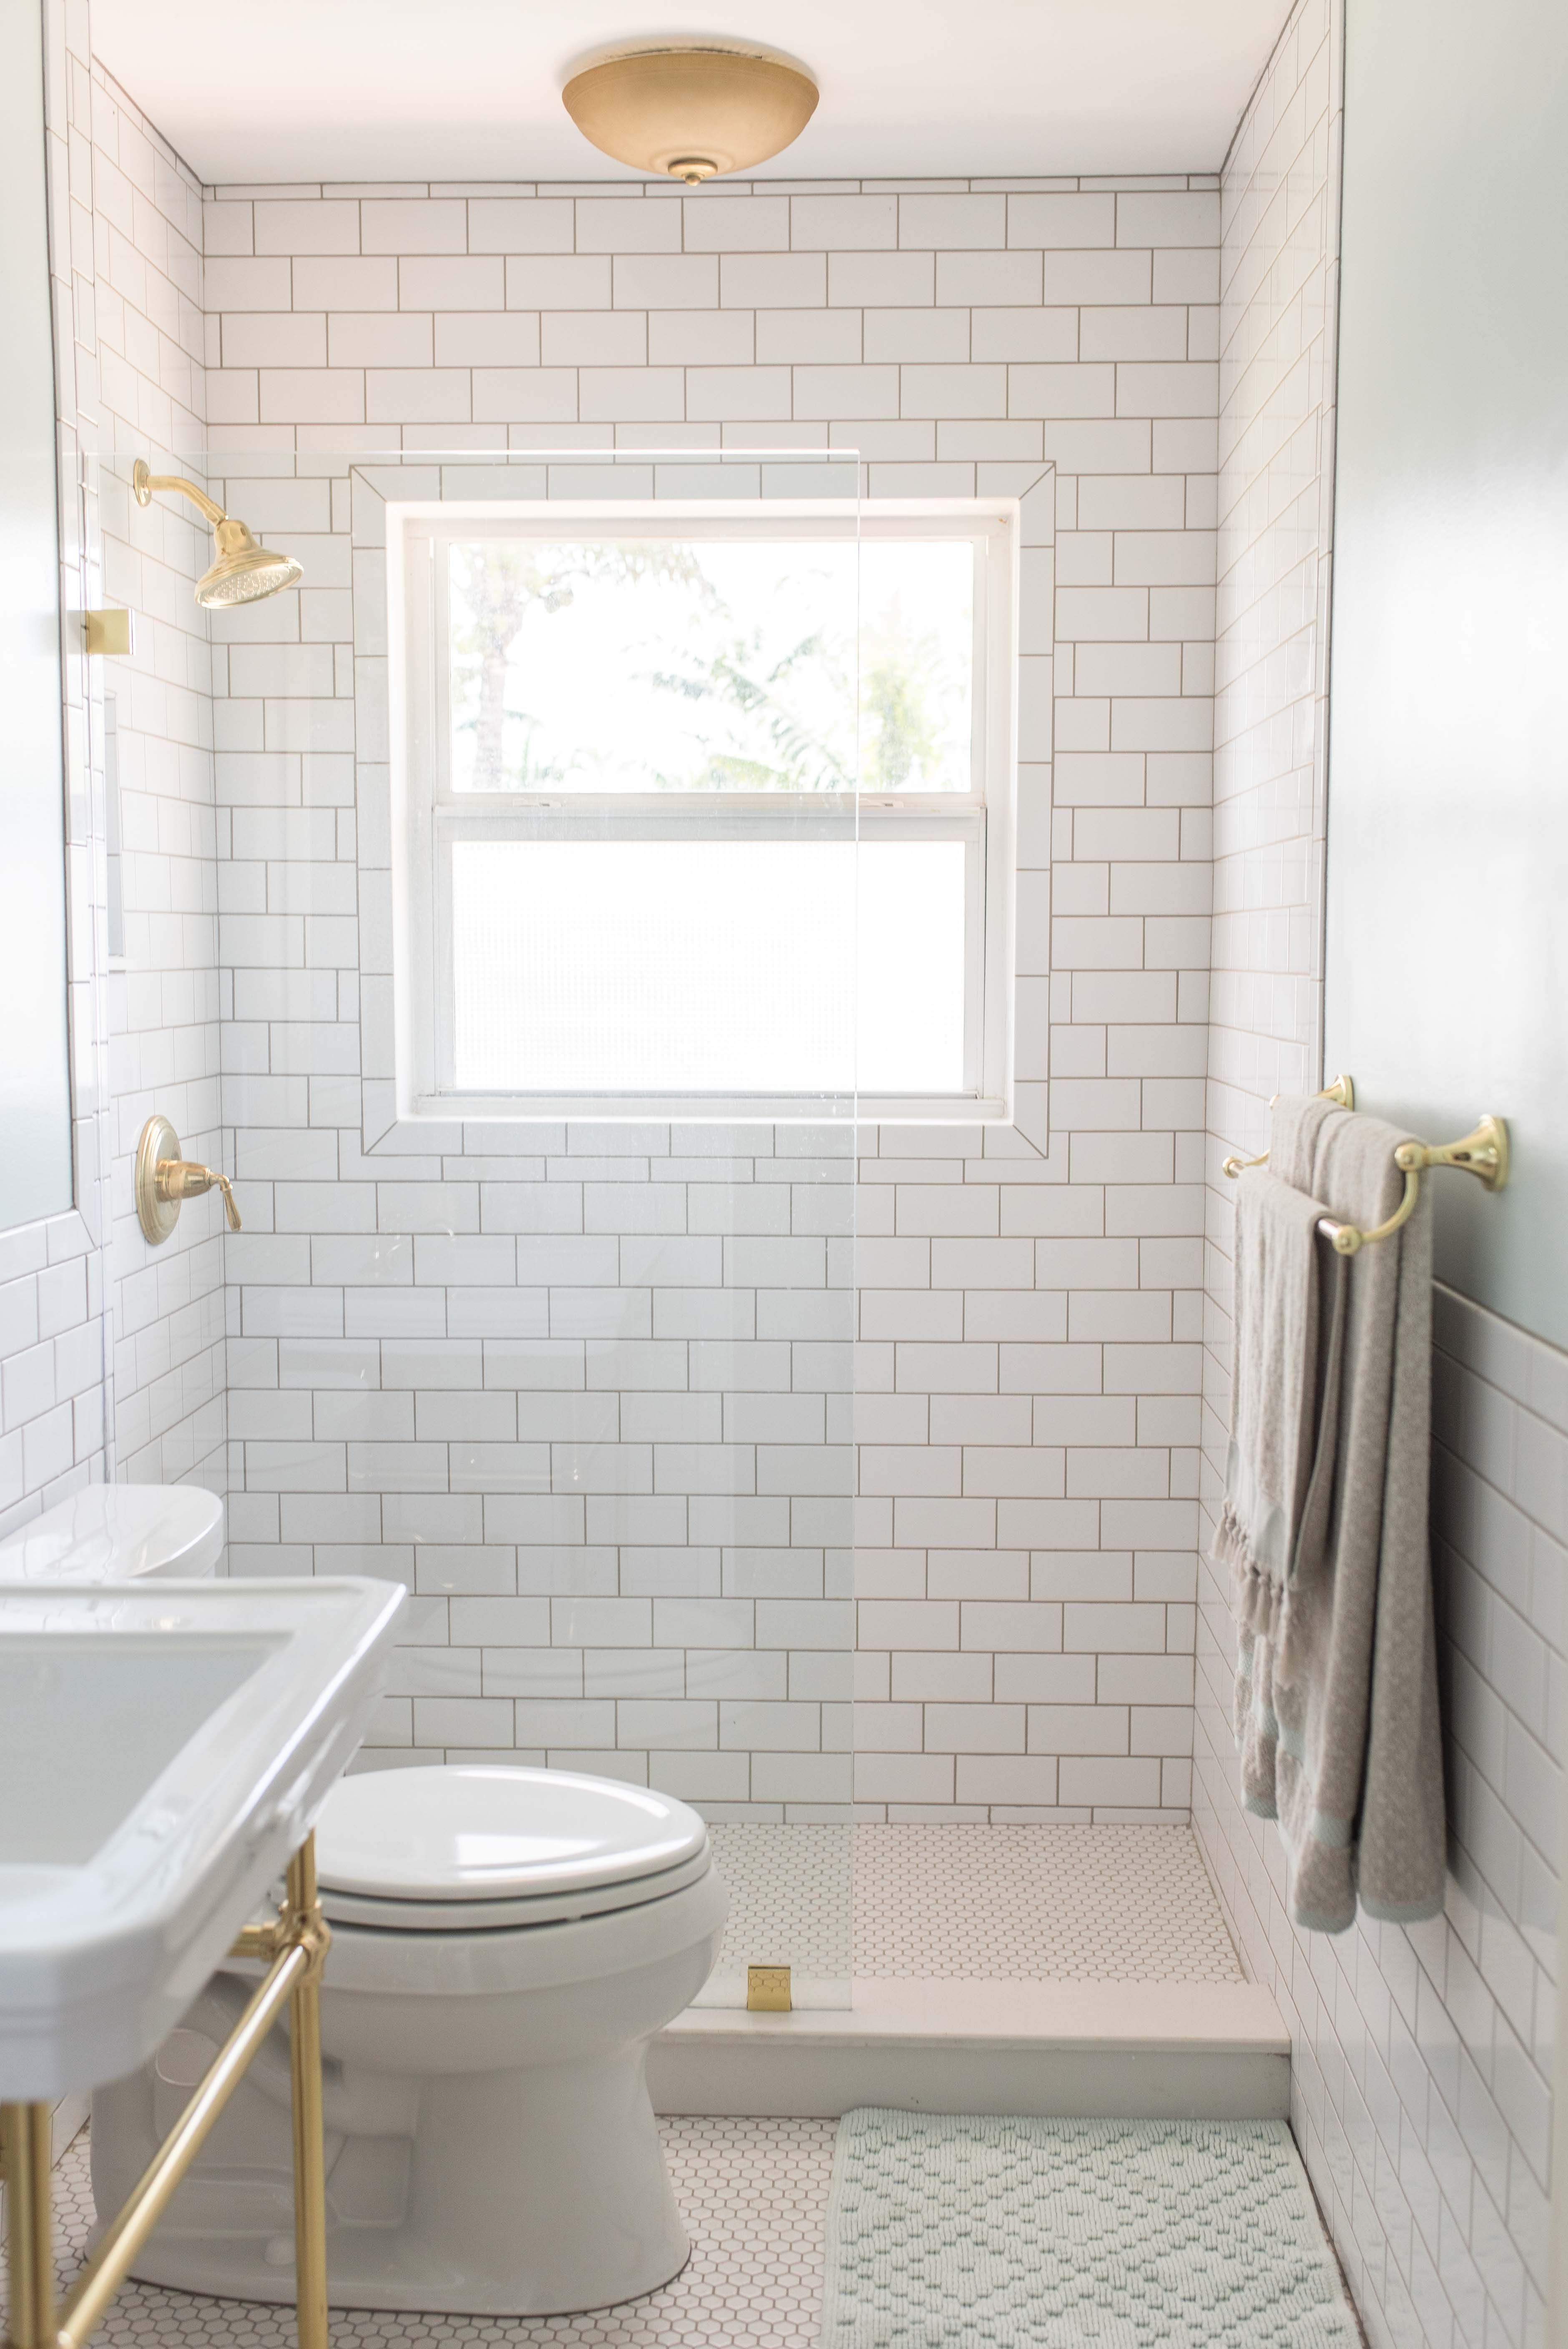 AFTER | Modern/Retro bathroom remodel with classic white subway ...